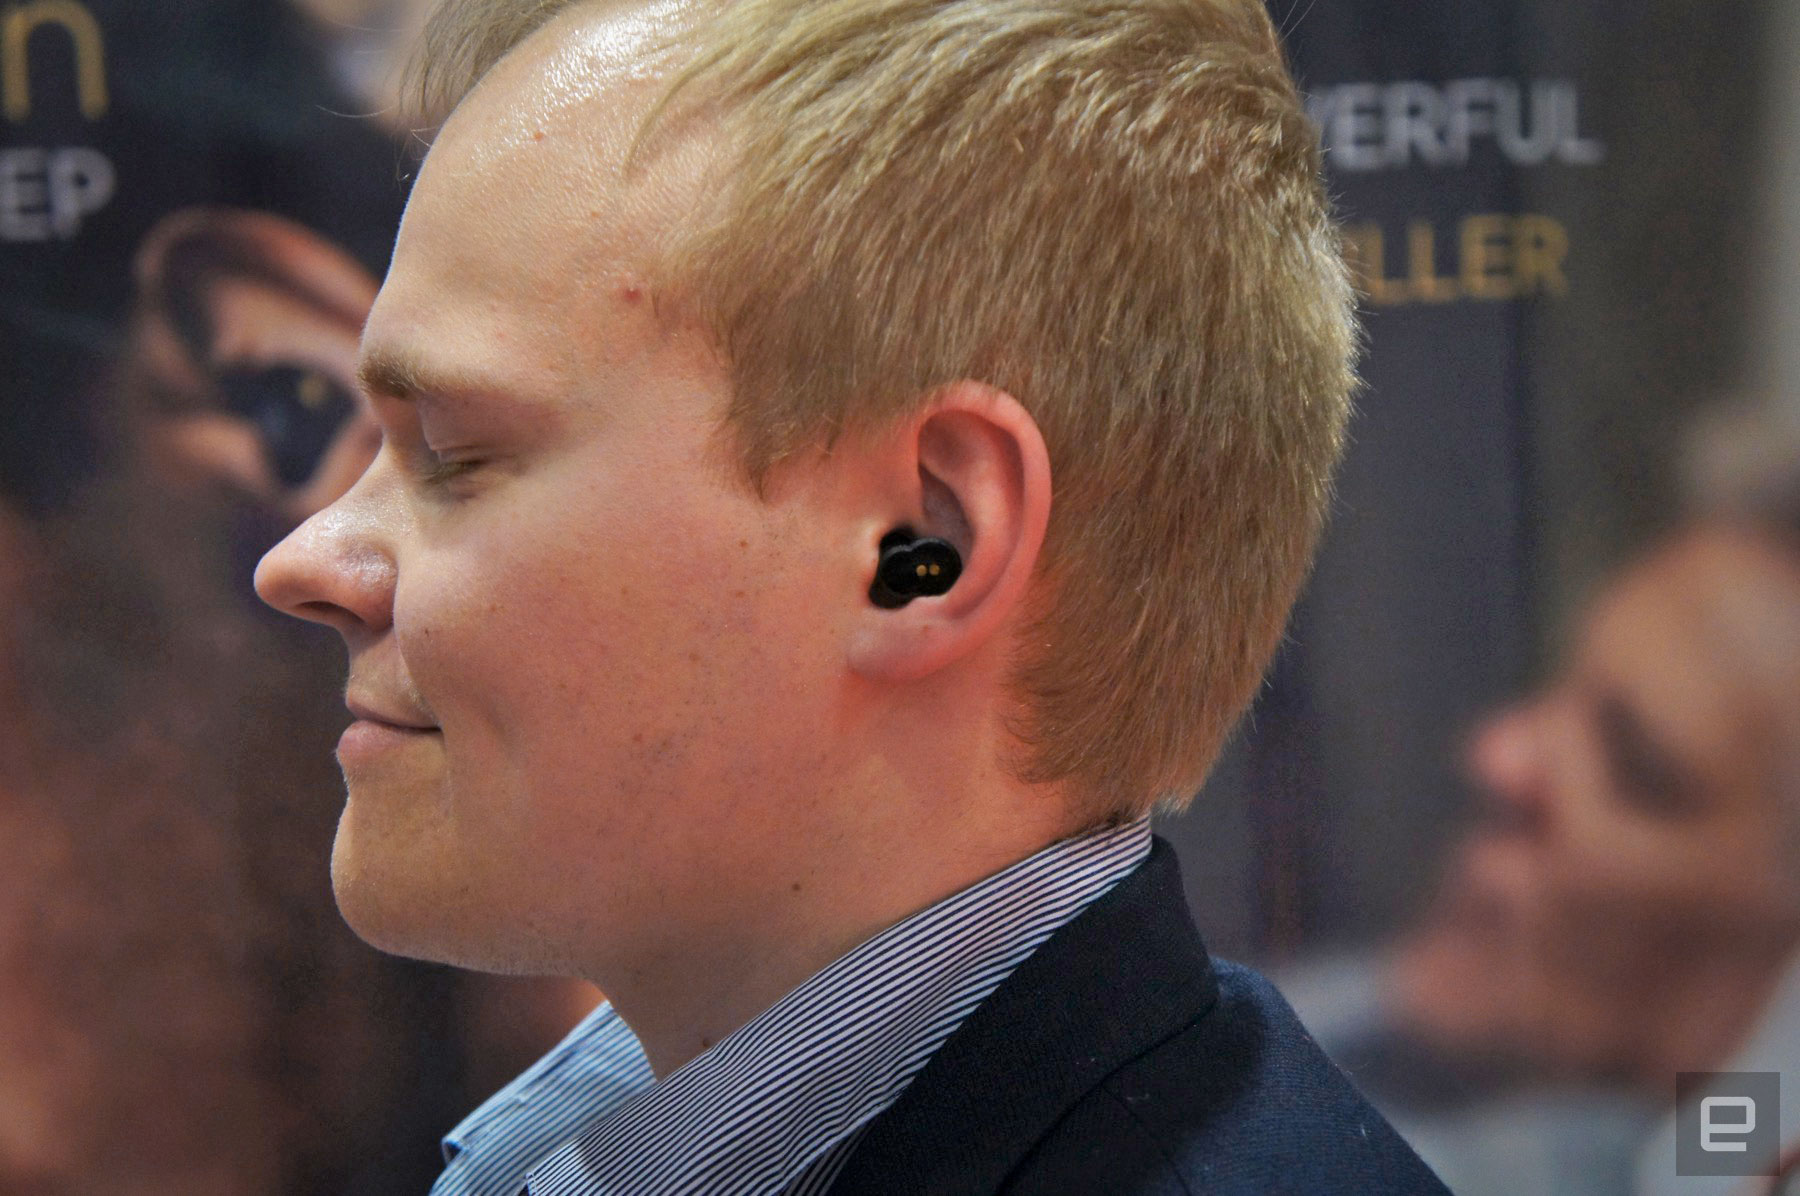 QuietOn's new noise-cancelling earbuds banish the sound of snoring